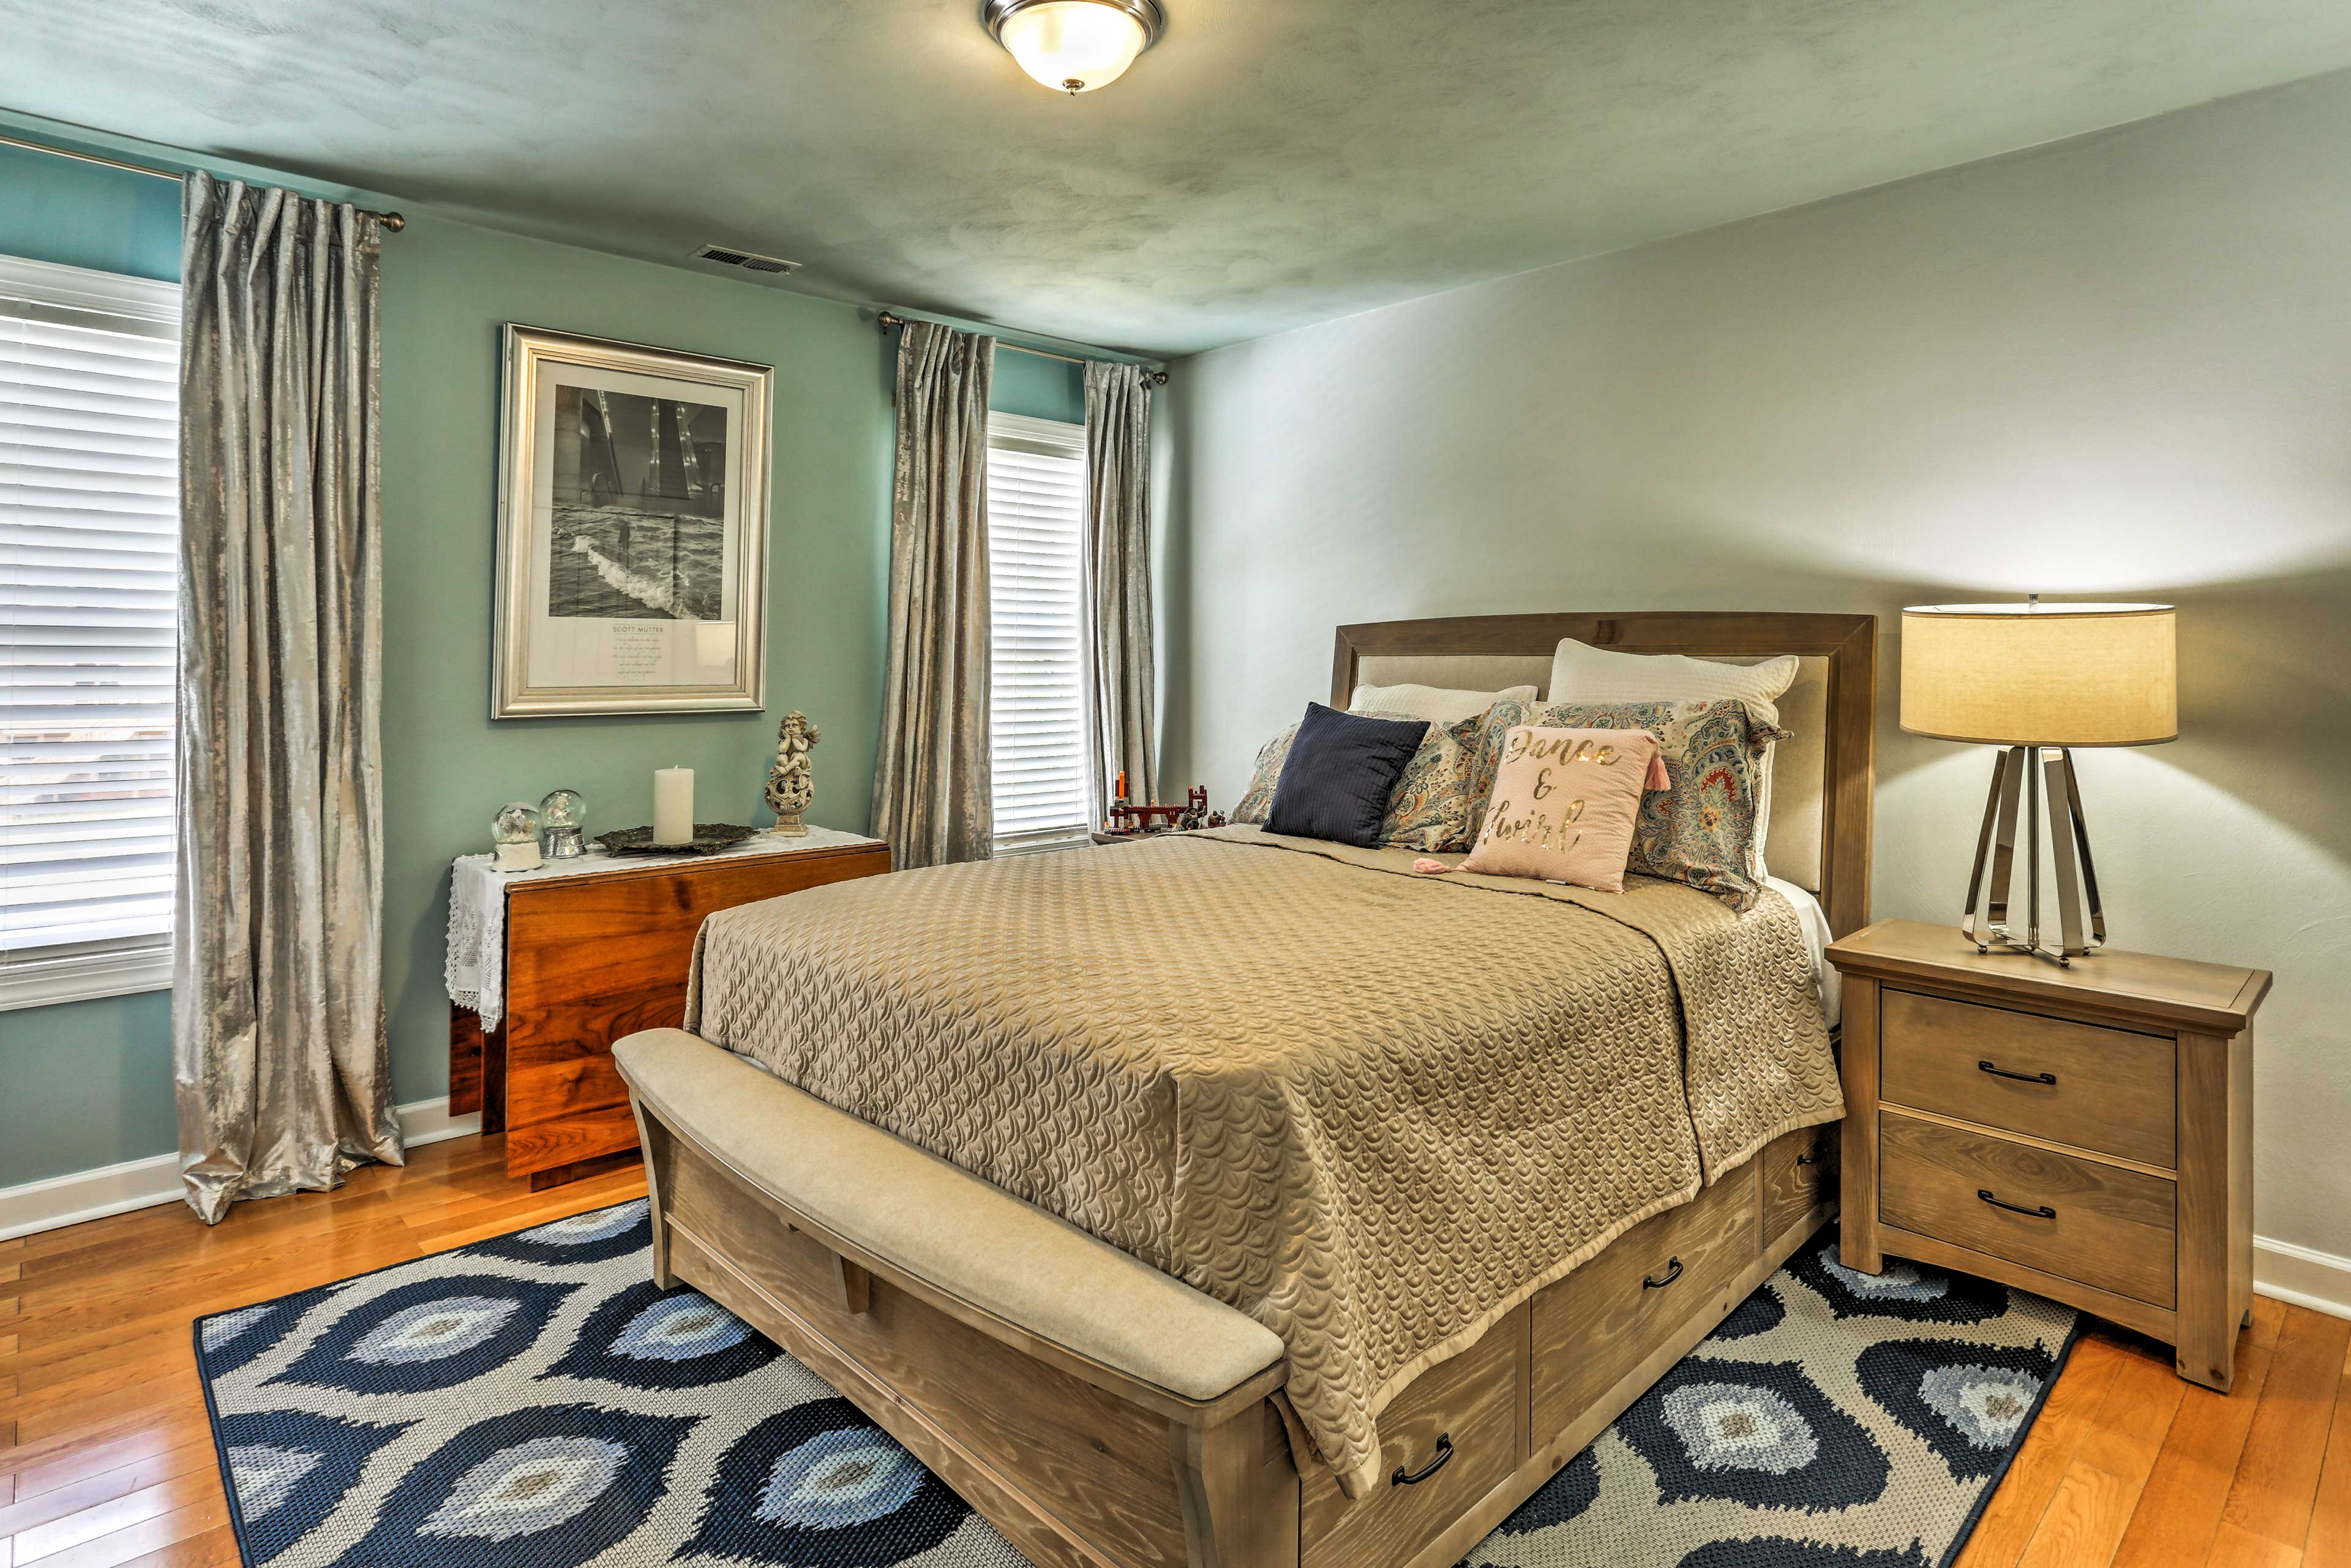 The 2 additional bedrooms feature queen-sized beds.